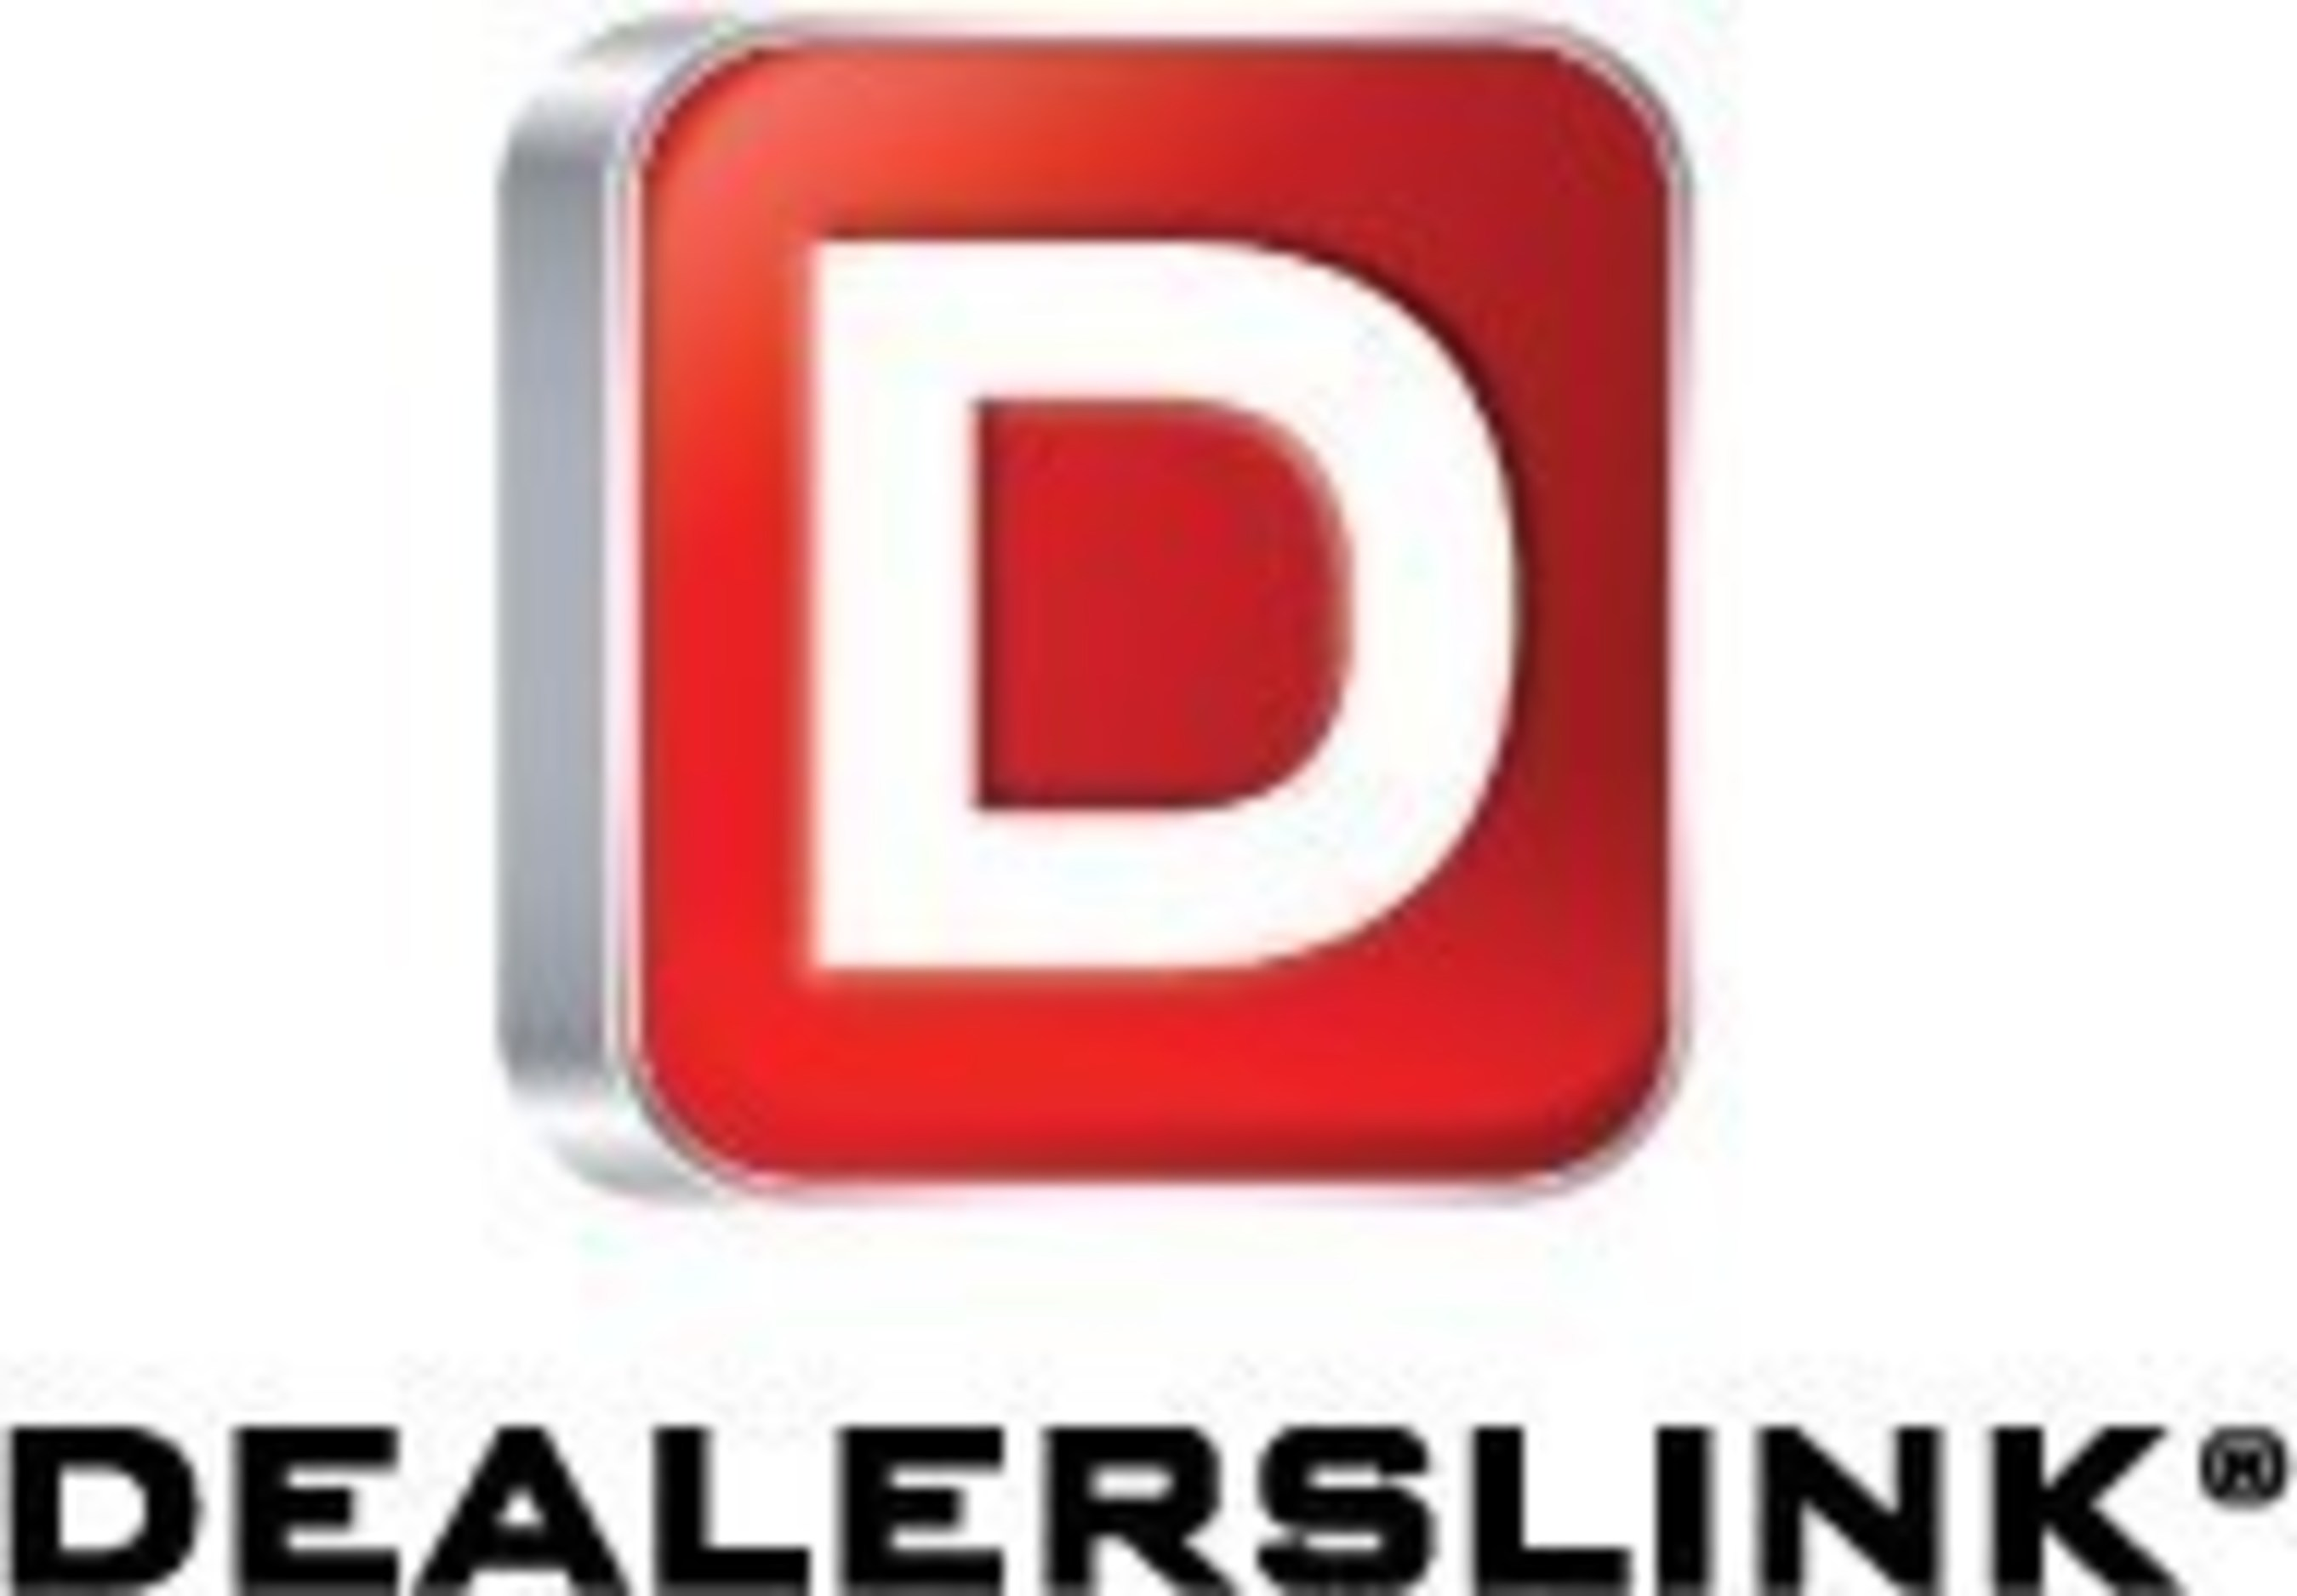 DealersLink' Achieves Another Milestone Celebrating the 10 Year Anniversary of Its Dealer to Dealer Wholesale Marketplace